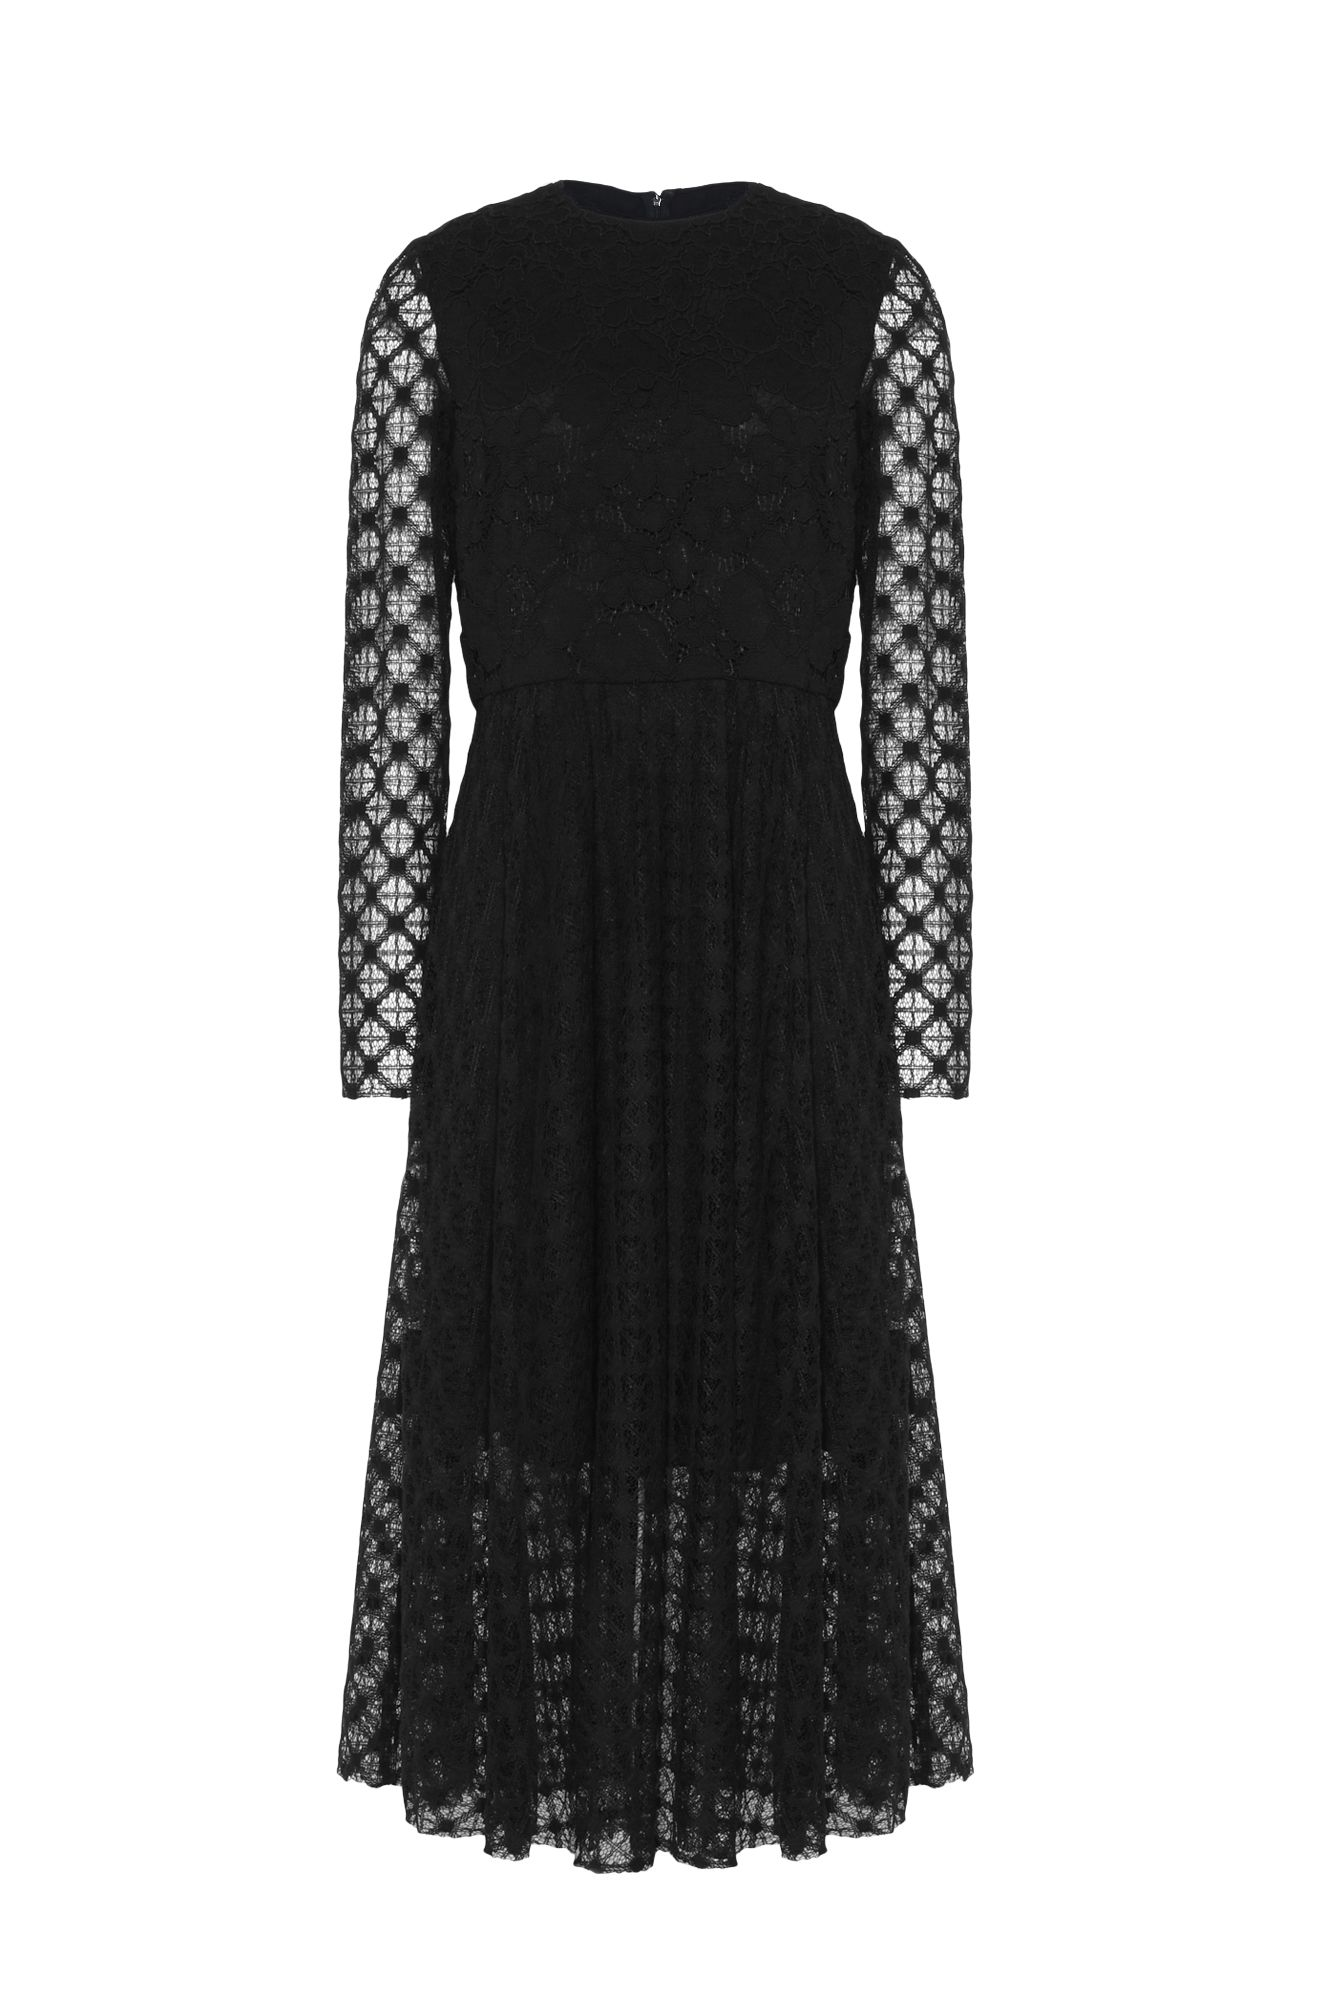 LIZ LACE DRESS